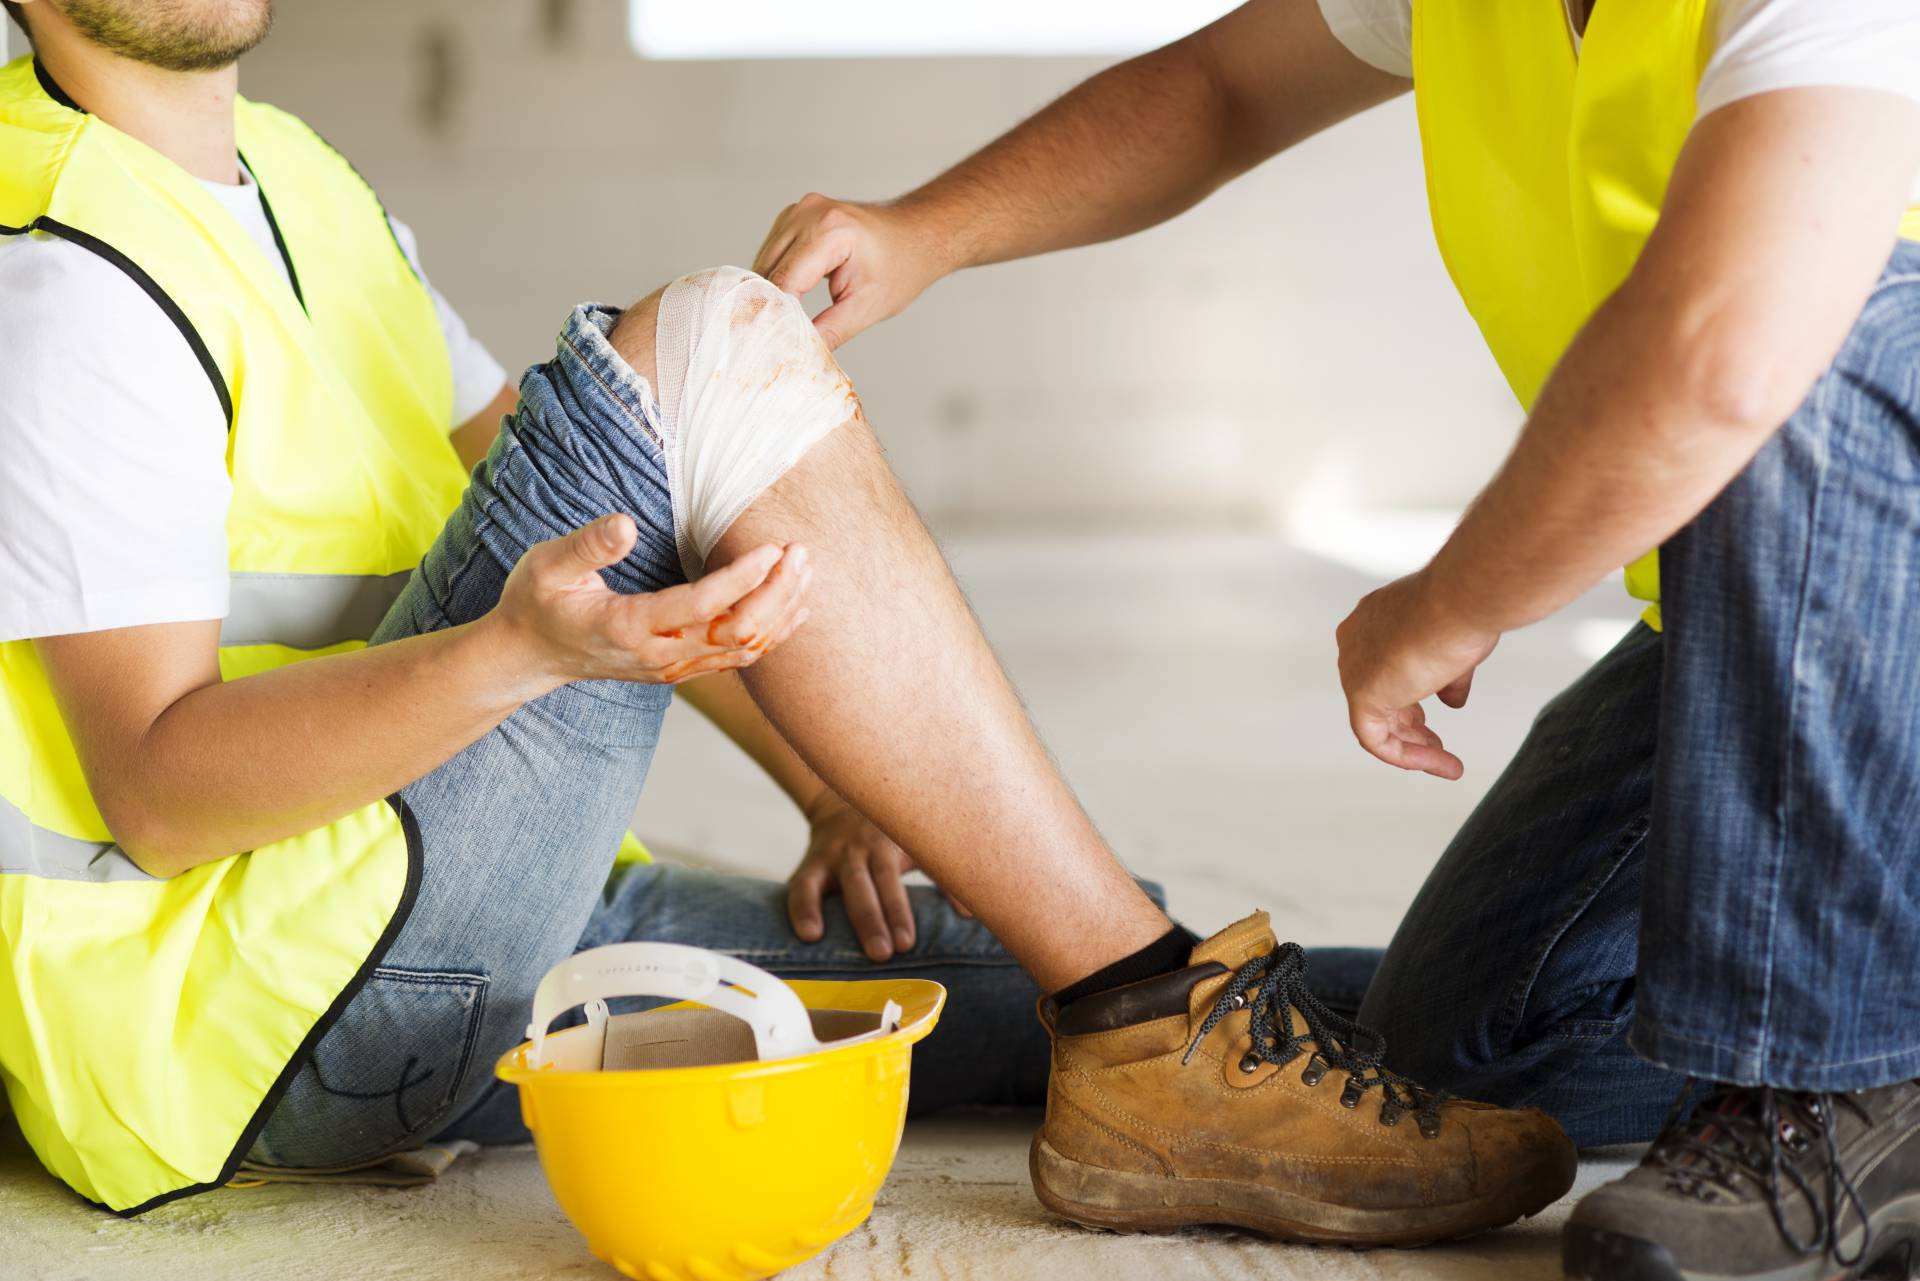 Injured at work, Our Sandy Springs Personal Injury Lawyers can help